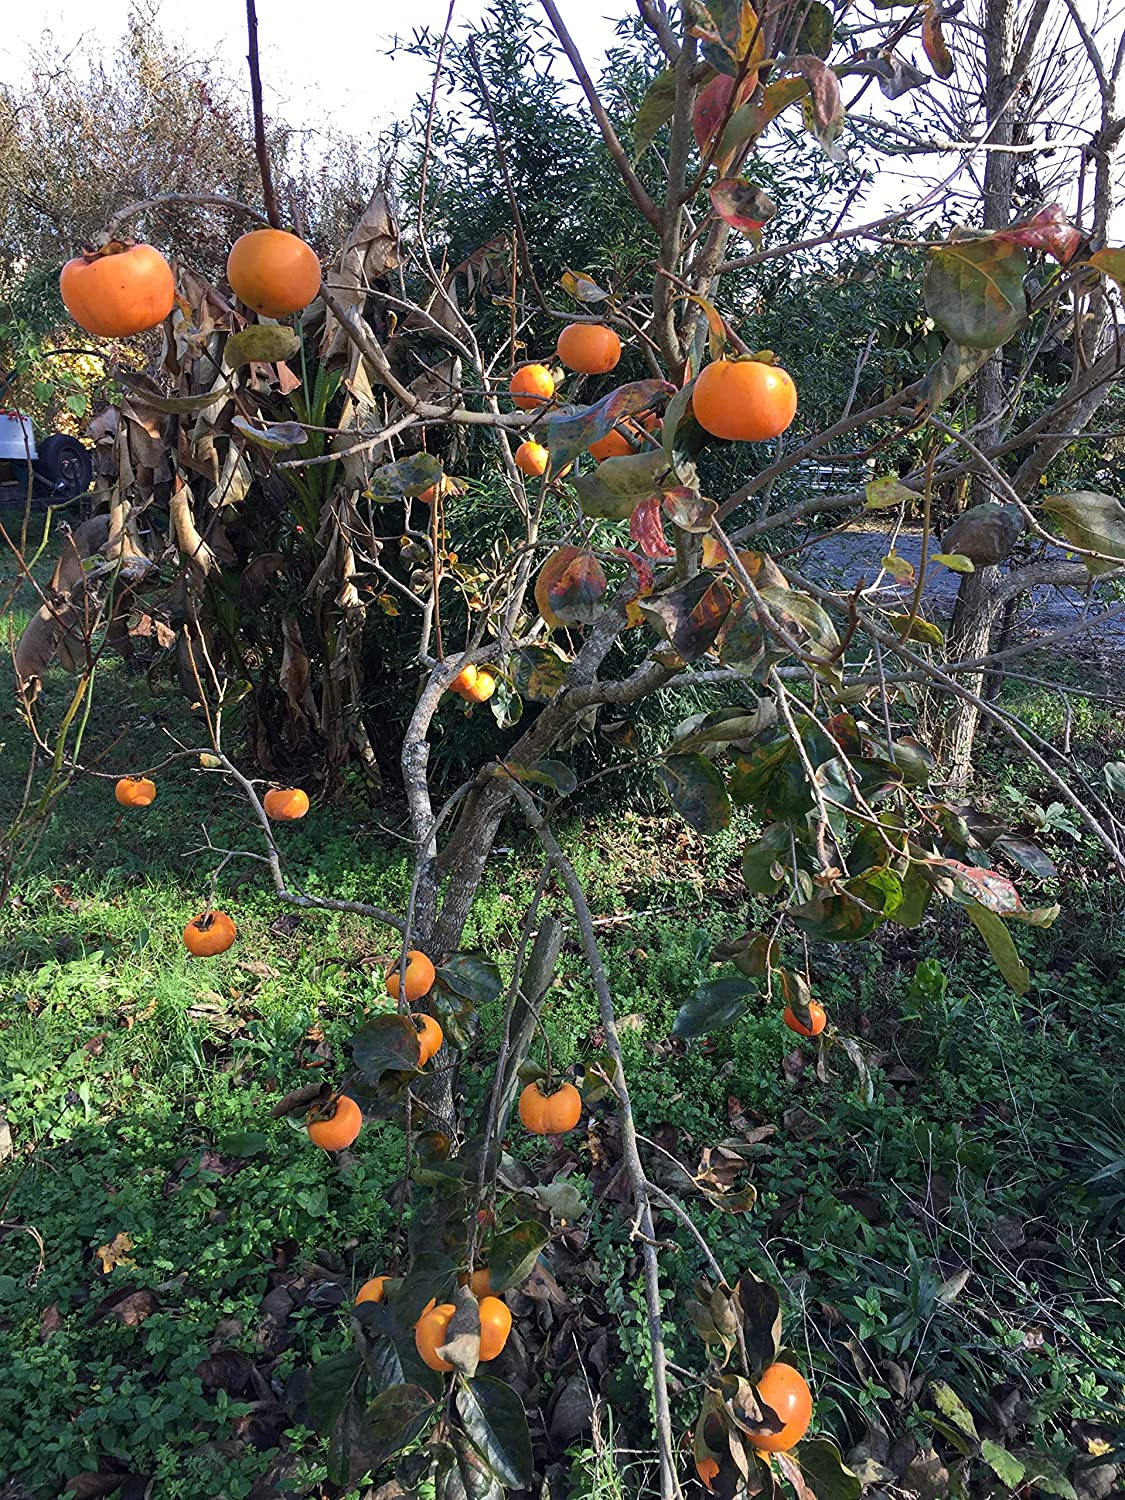 Diospyros Kaki Persimmon Giant Hanafuyu Seeds by Robsrareandgiantseeds UPC0764425786115 Non-GMO,Organic,Historic Plants,1033 Package of 4 Seeds